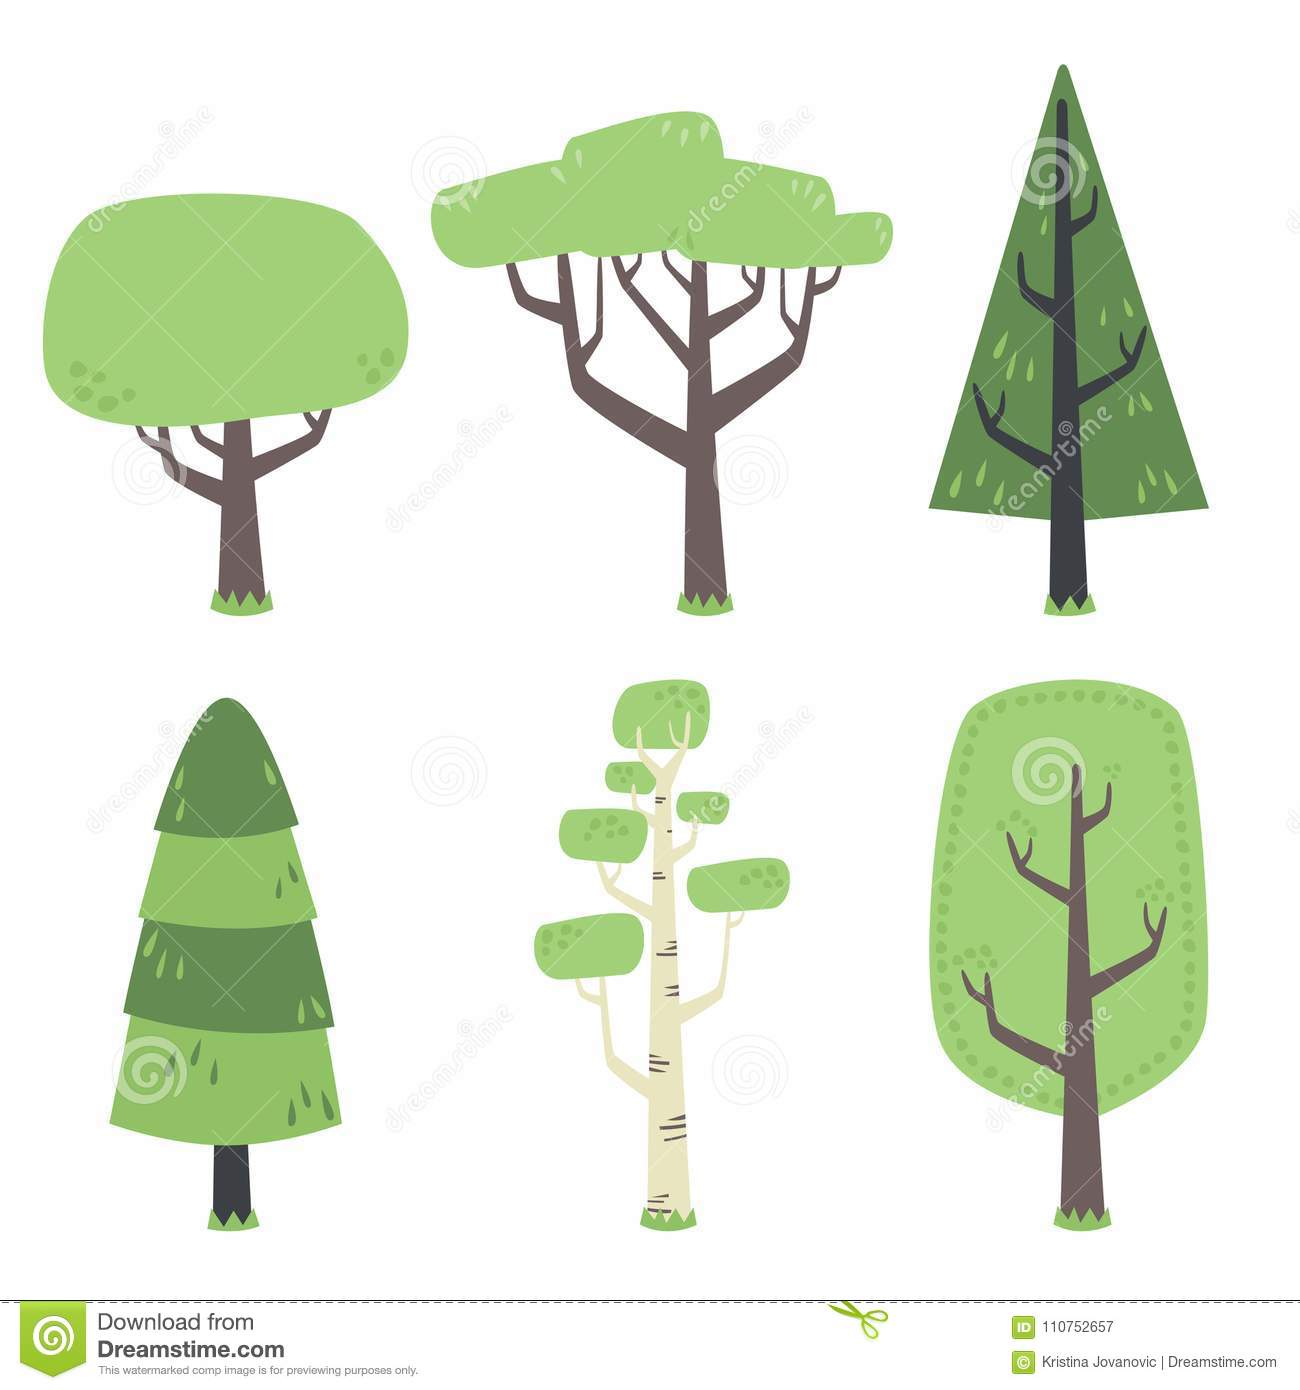 Crown Trees Stock Illustrations 2 407 Crown Trees Stock Illustrations Vectors Clipart Dreamstime Choose from 1700+ cartoon tree graphic resources and download in the form of png, eps, ai or psd. https www dreamstime com flat illustration forest trees green crown set flat illustration forest trees green crown set all elements grouped image110752657